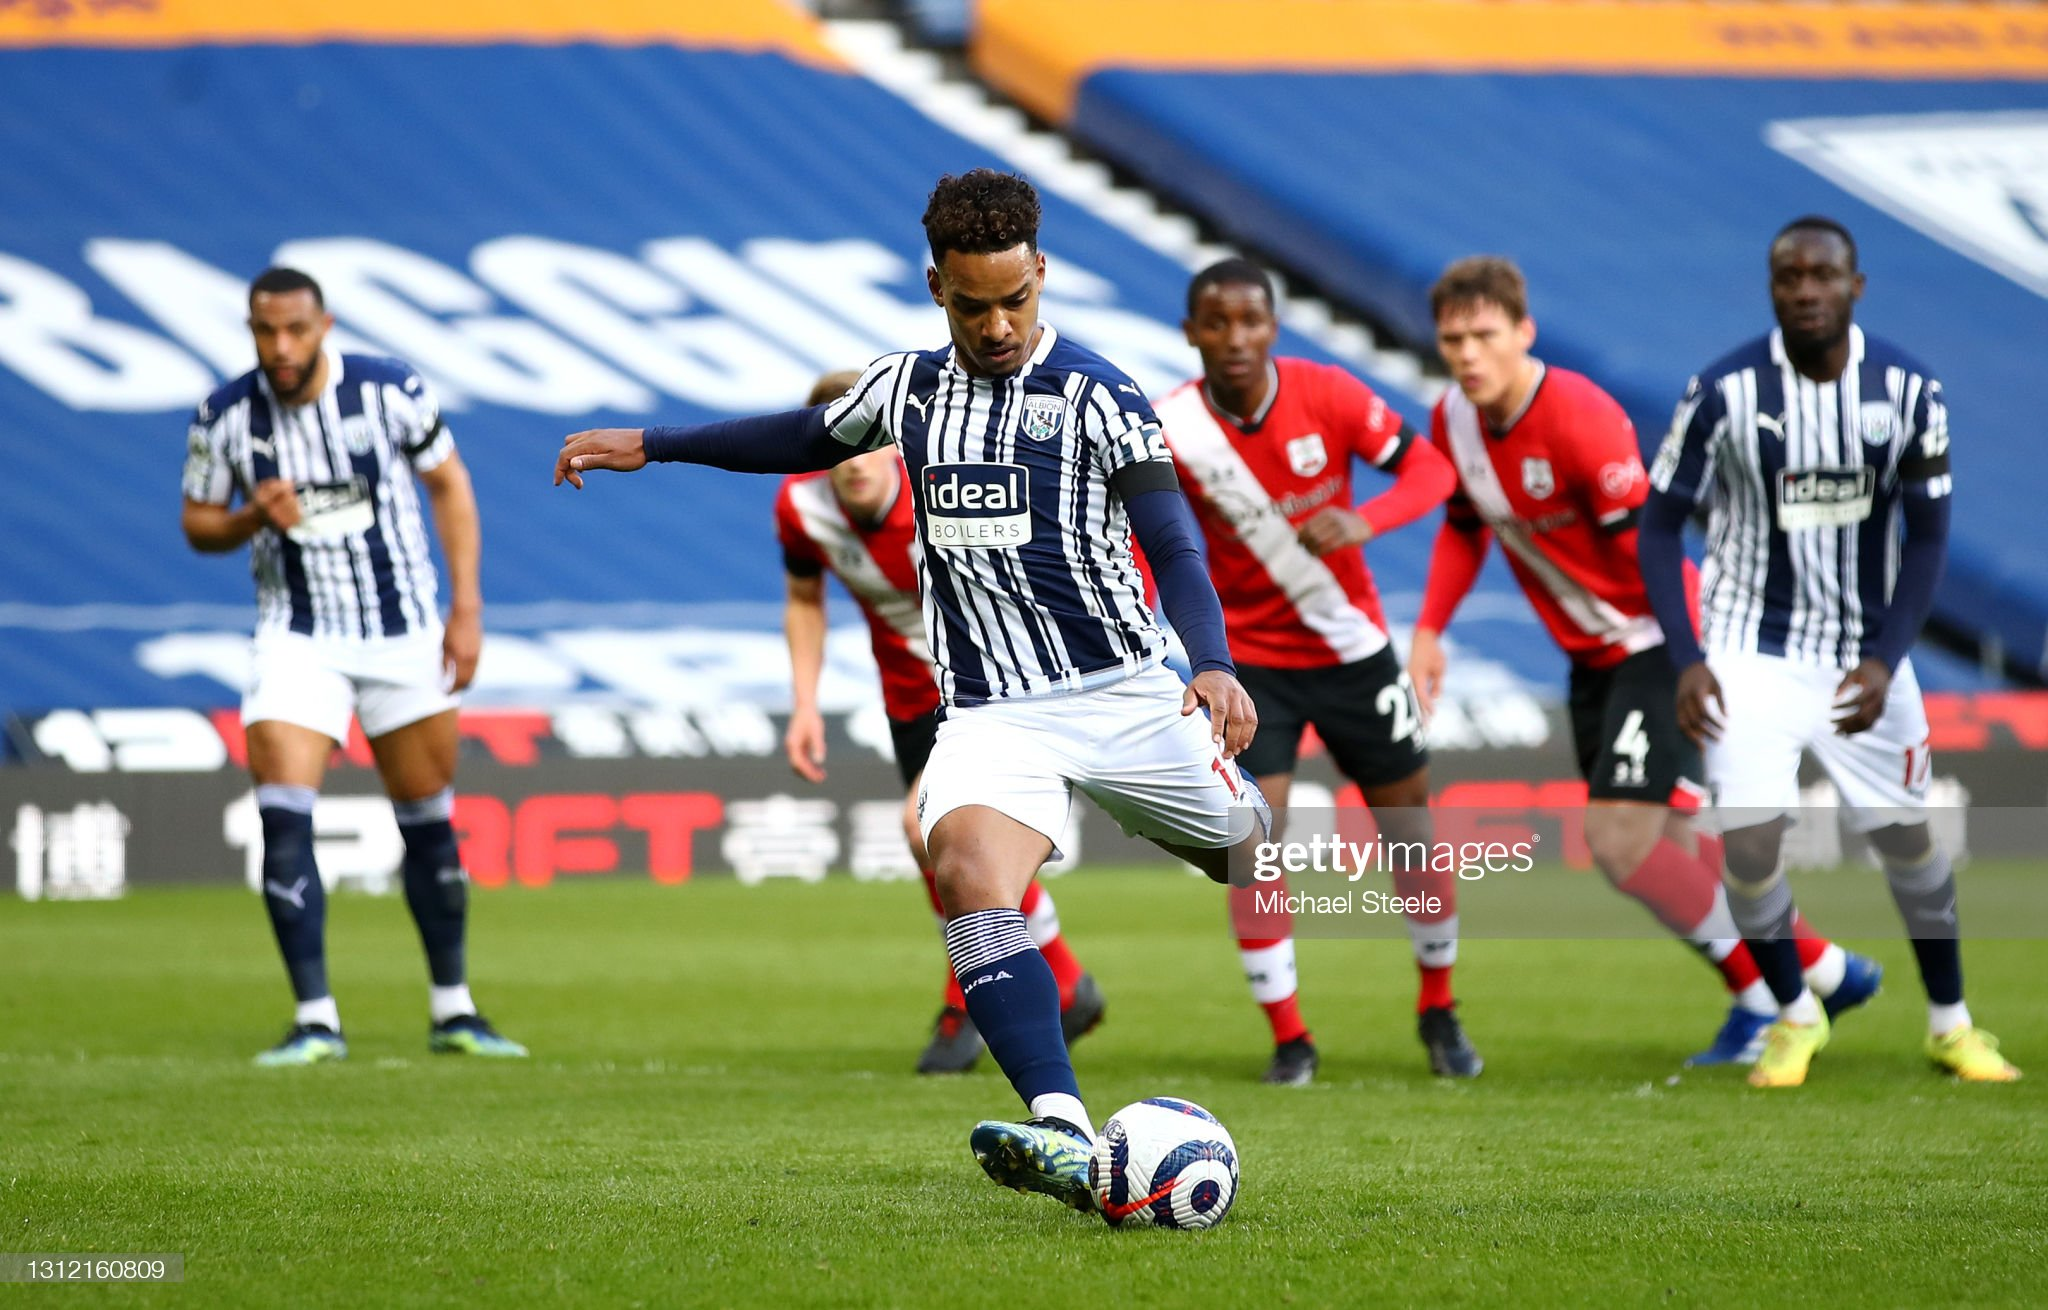 Which West Brom players will be playing in the the Premier League next season?